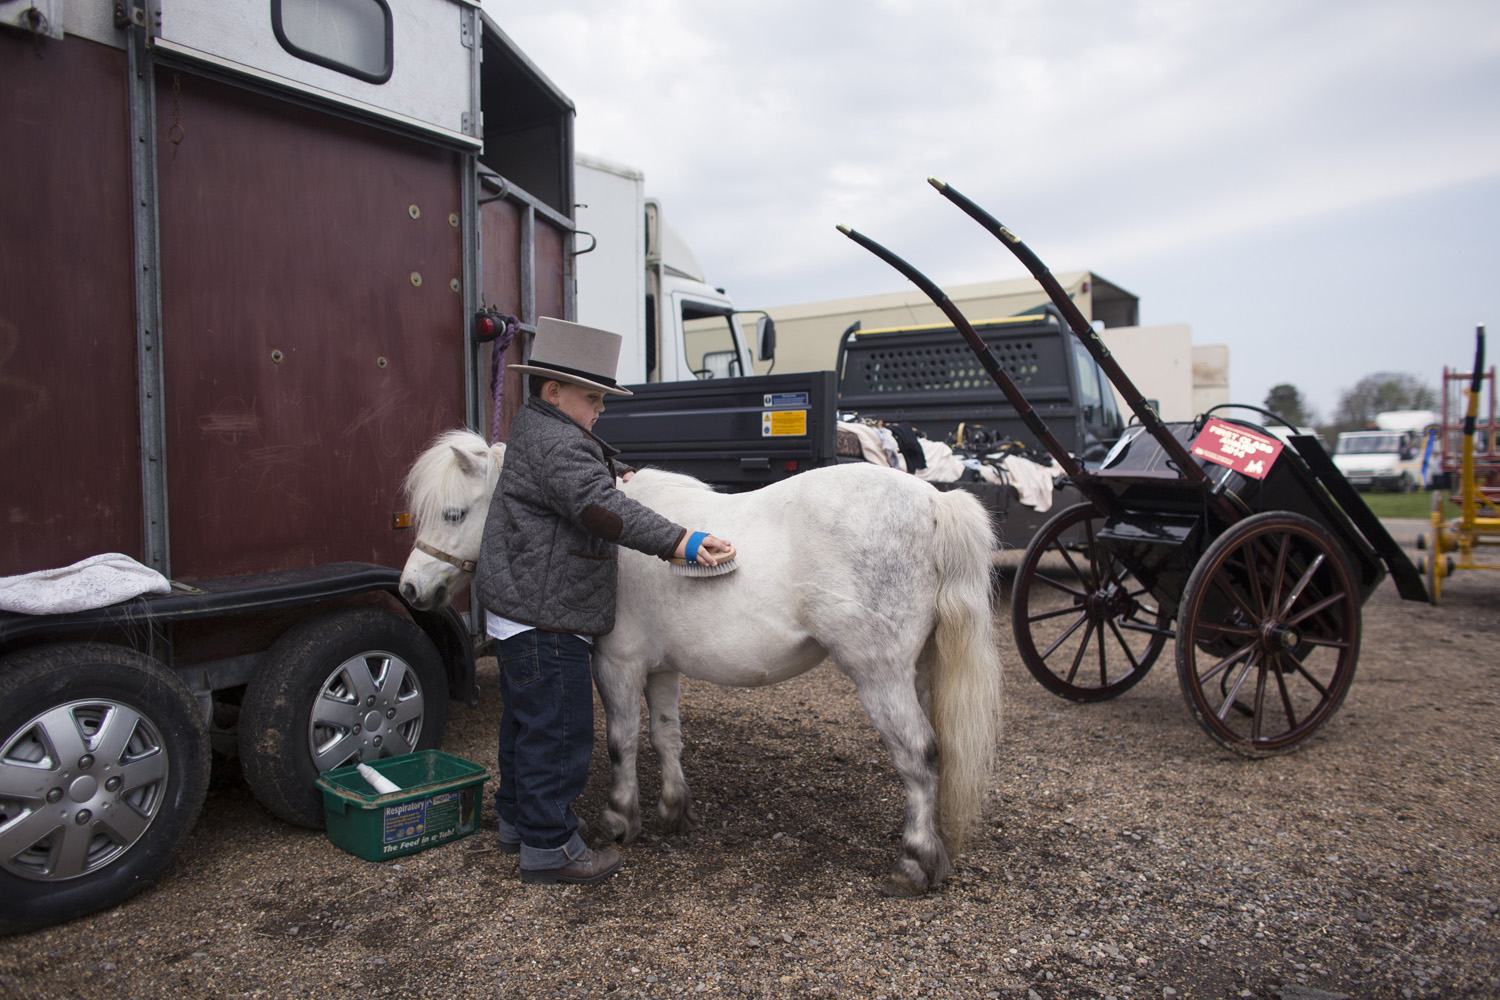 Donny McDermott, 6, grooms his Shetland pony before taking part in the annual 'London Harness Horse Parade' on April 21, 2014 in Ardingly, England.